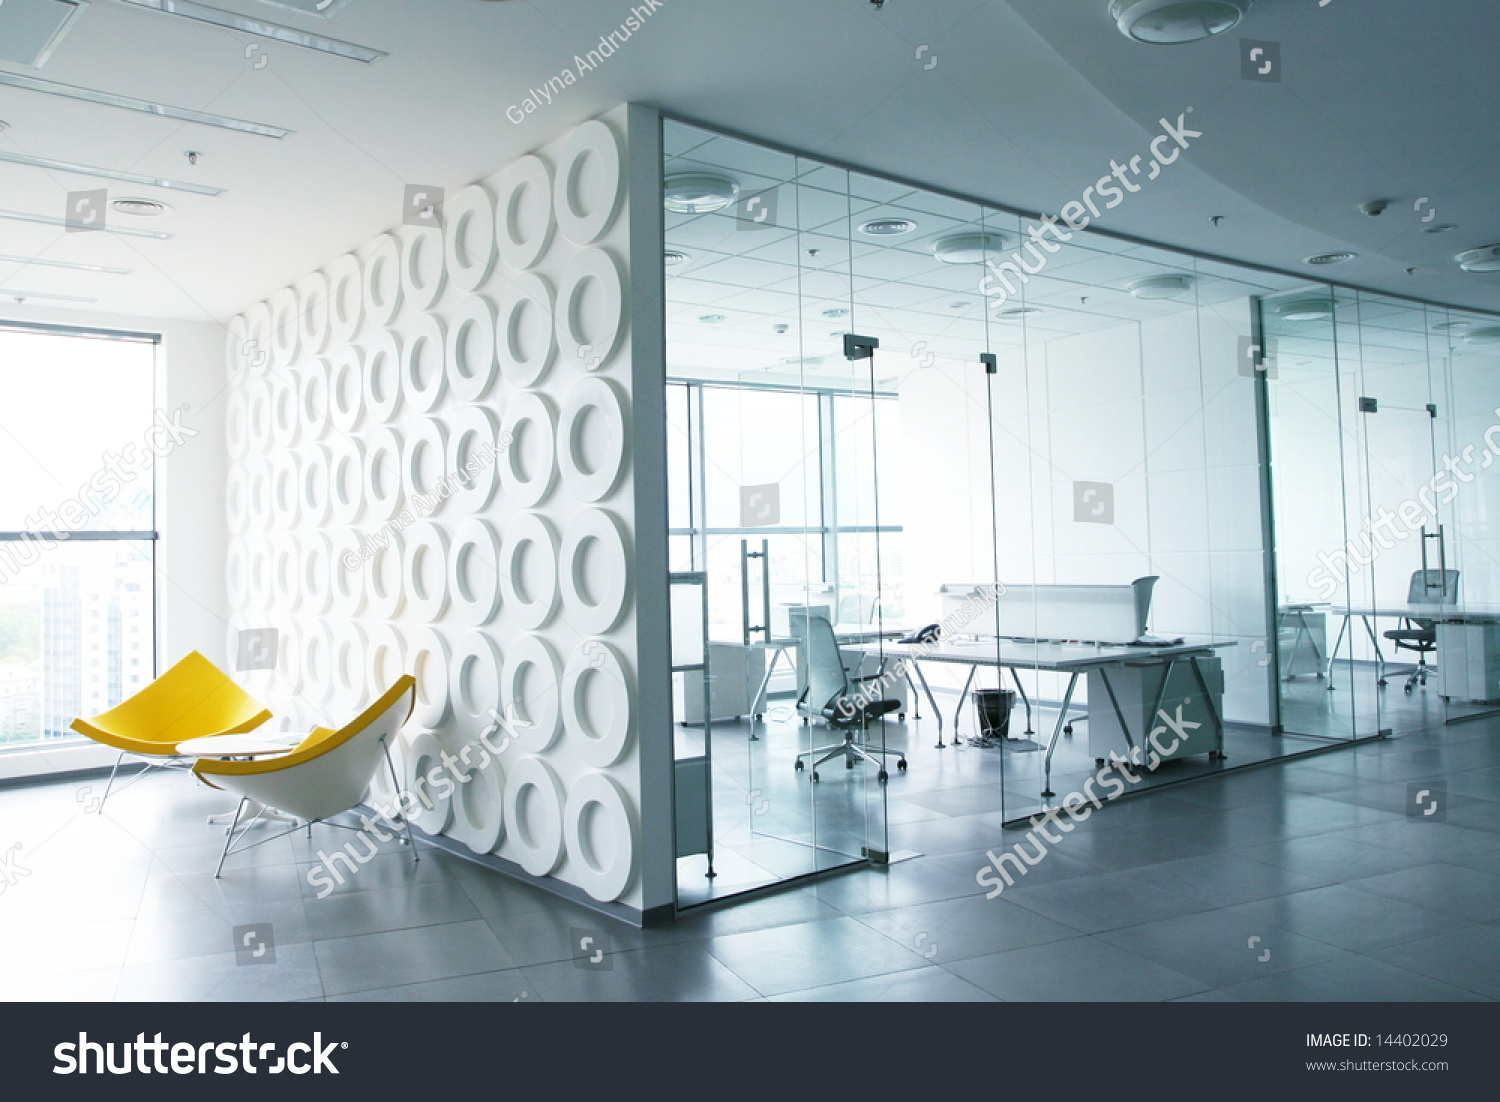 Office interior stock photo 14402029 shutterstock - Interior images ...